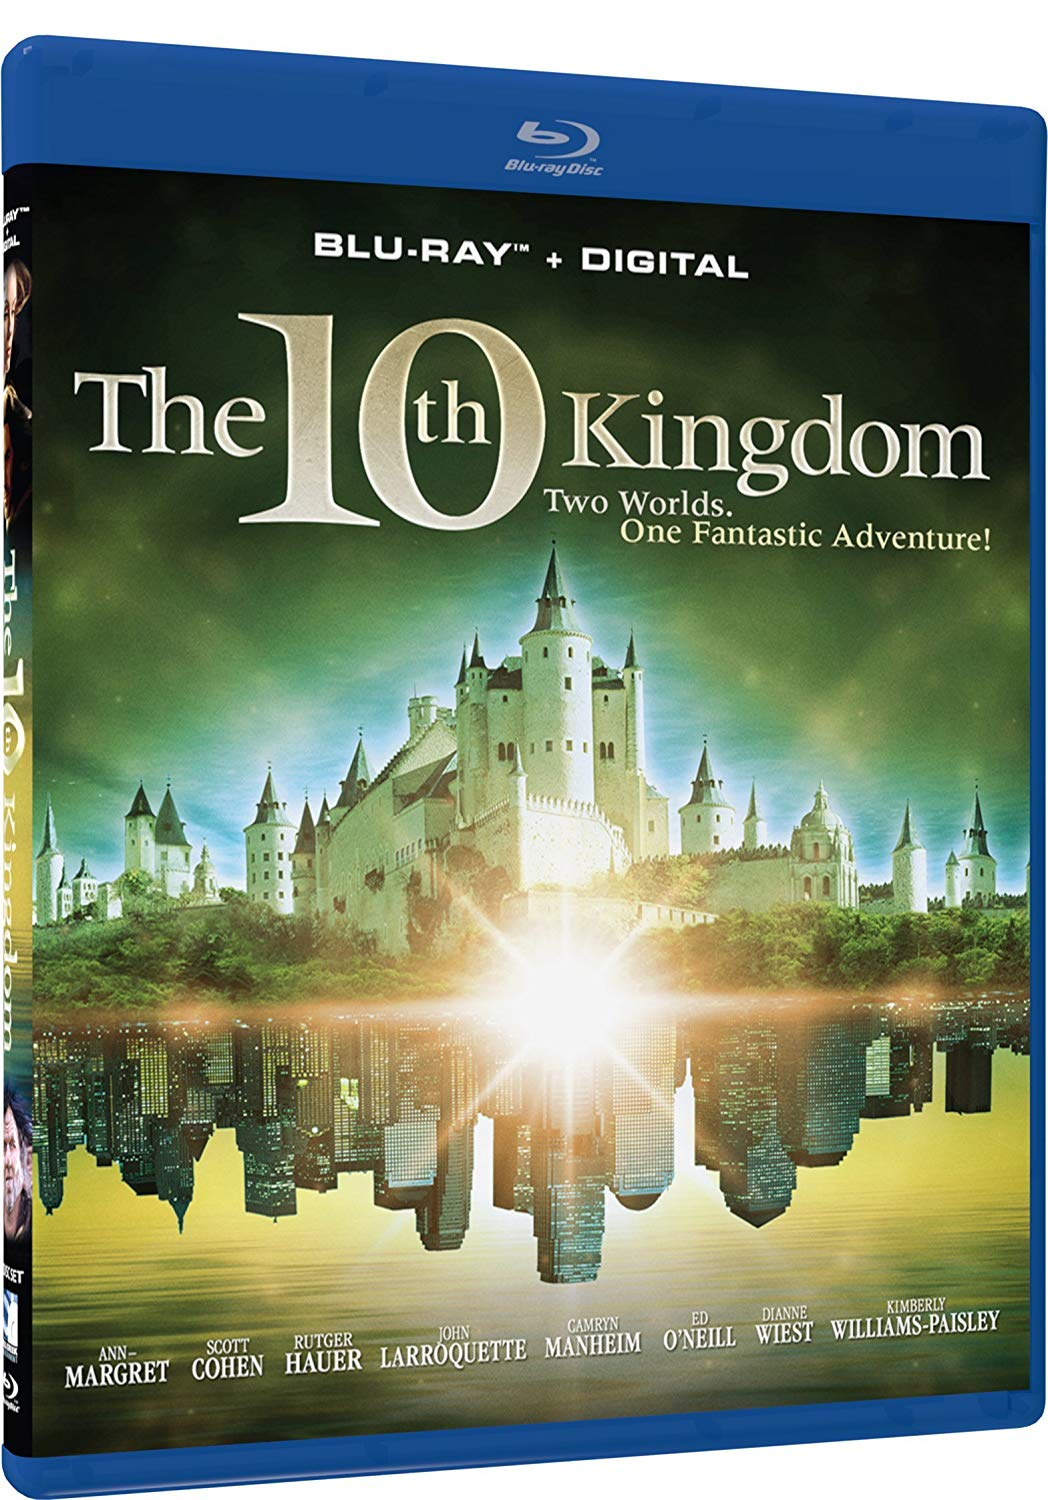 10th Kingdom, The + Digital - BD [Blu-ray]